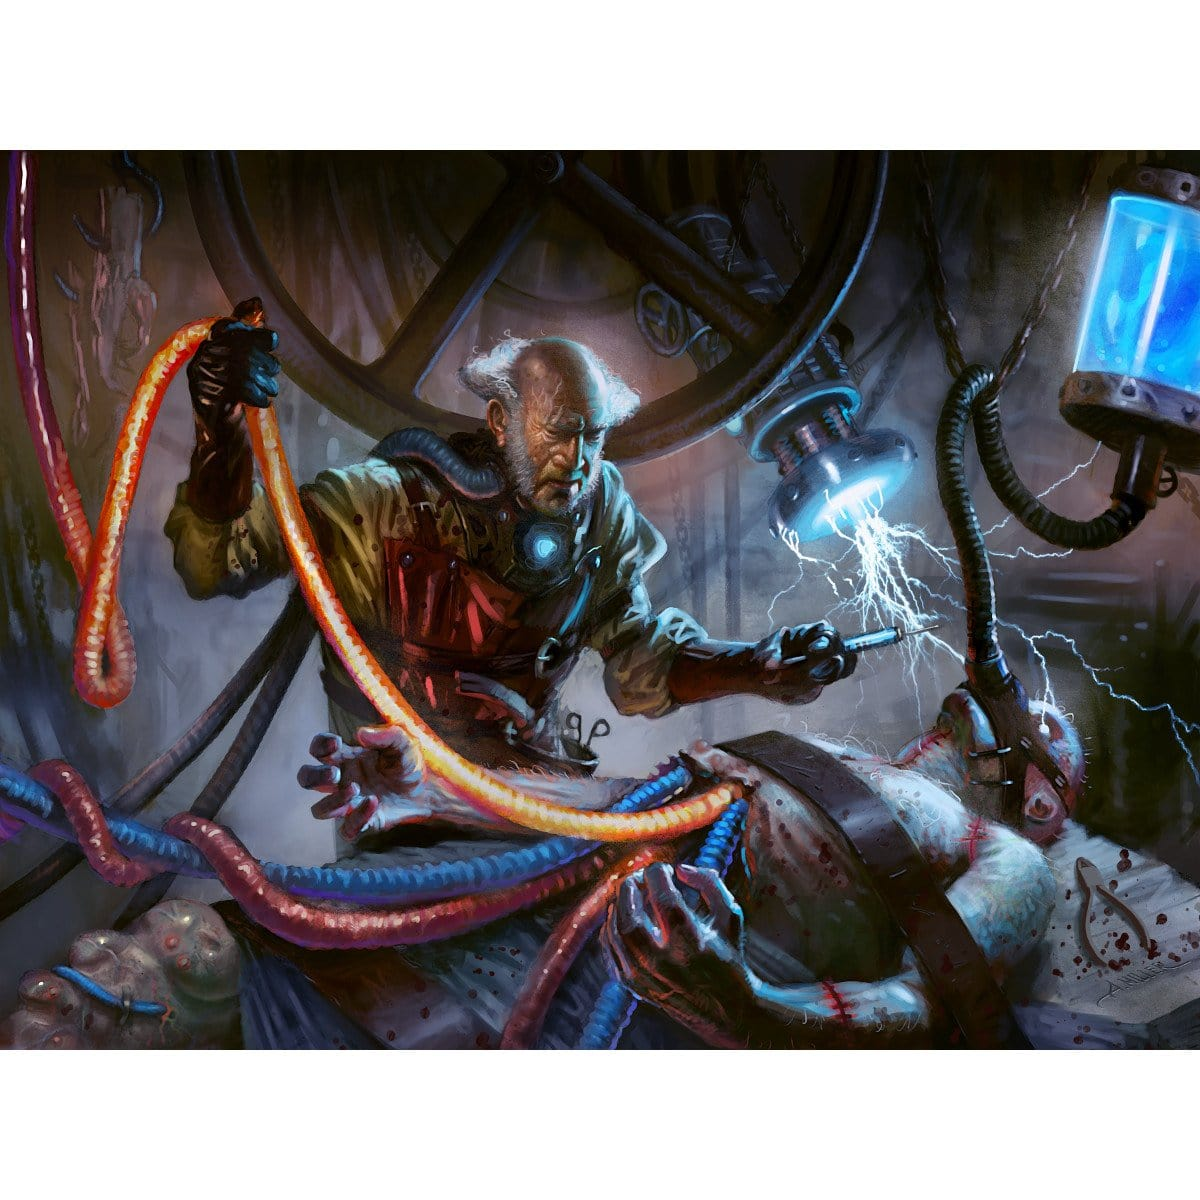 Ludevic, Necro-Alchemist Print - Print - Original Magic Art - Accessories for Magic the Gathering and other card games